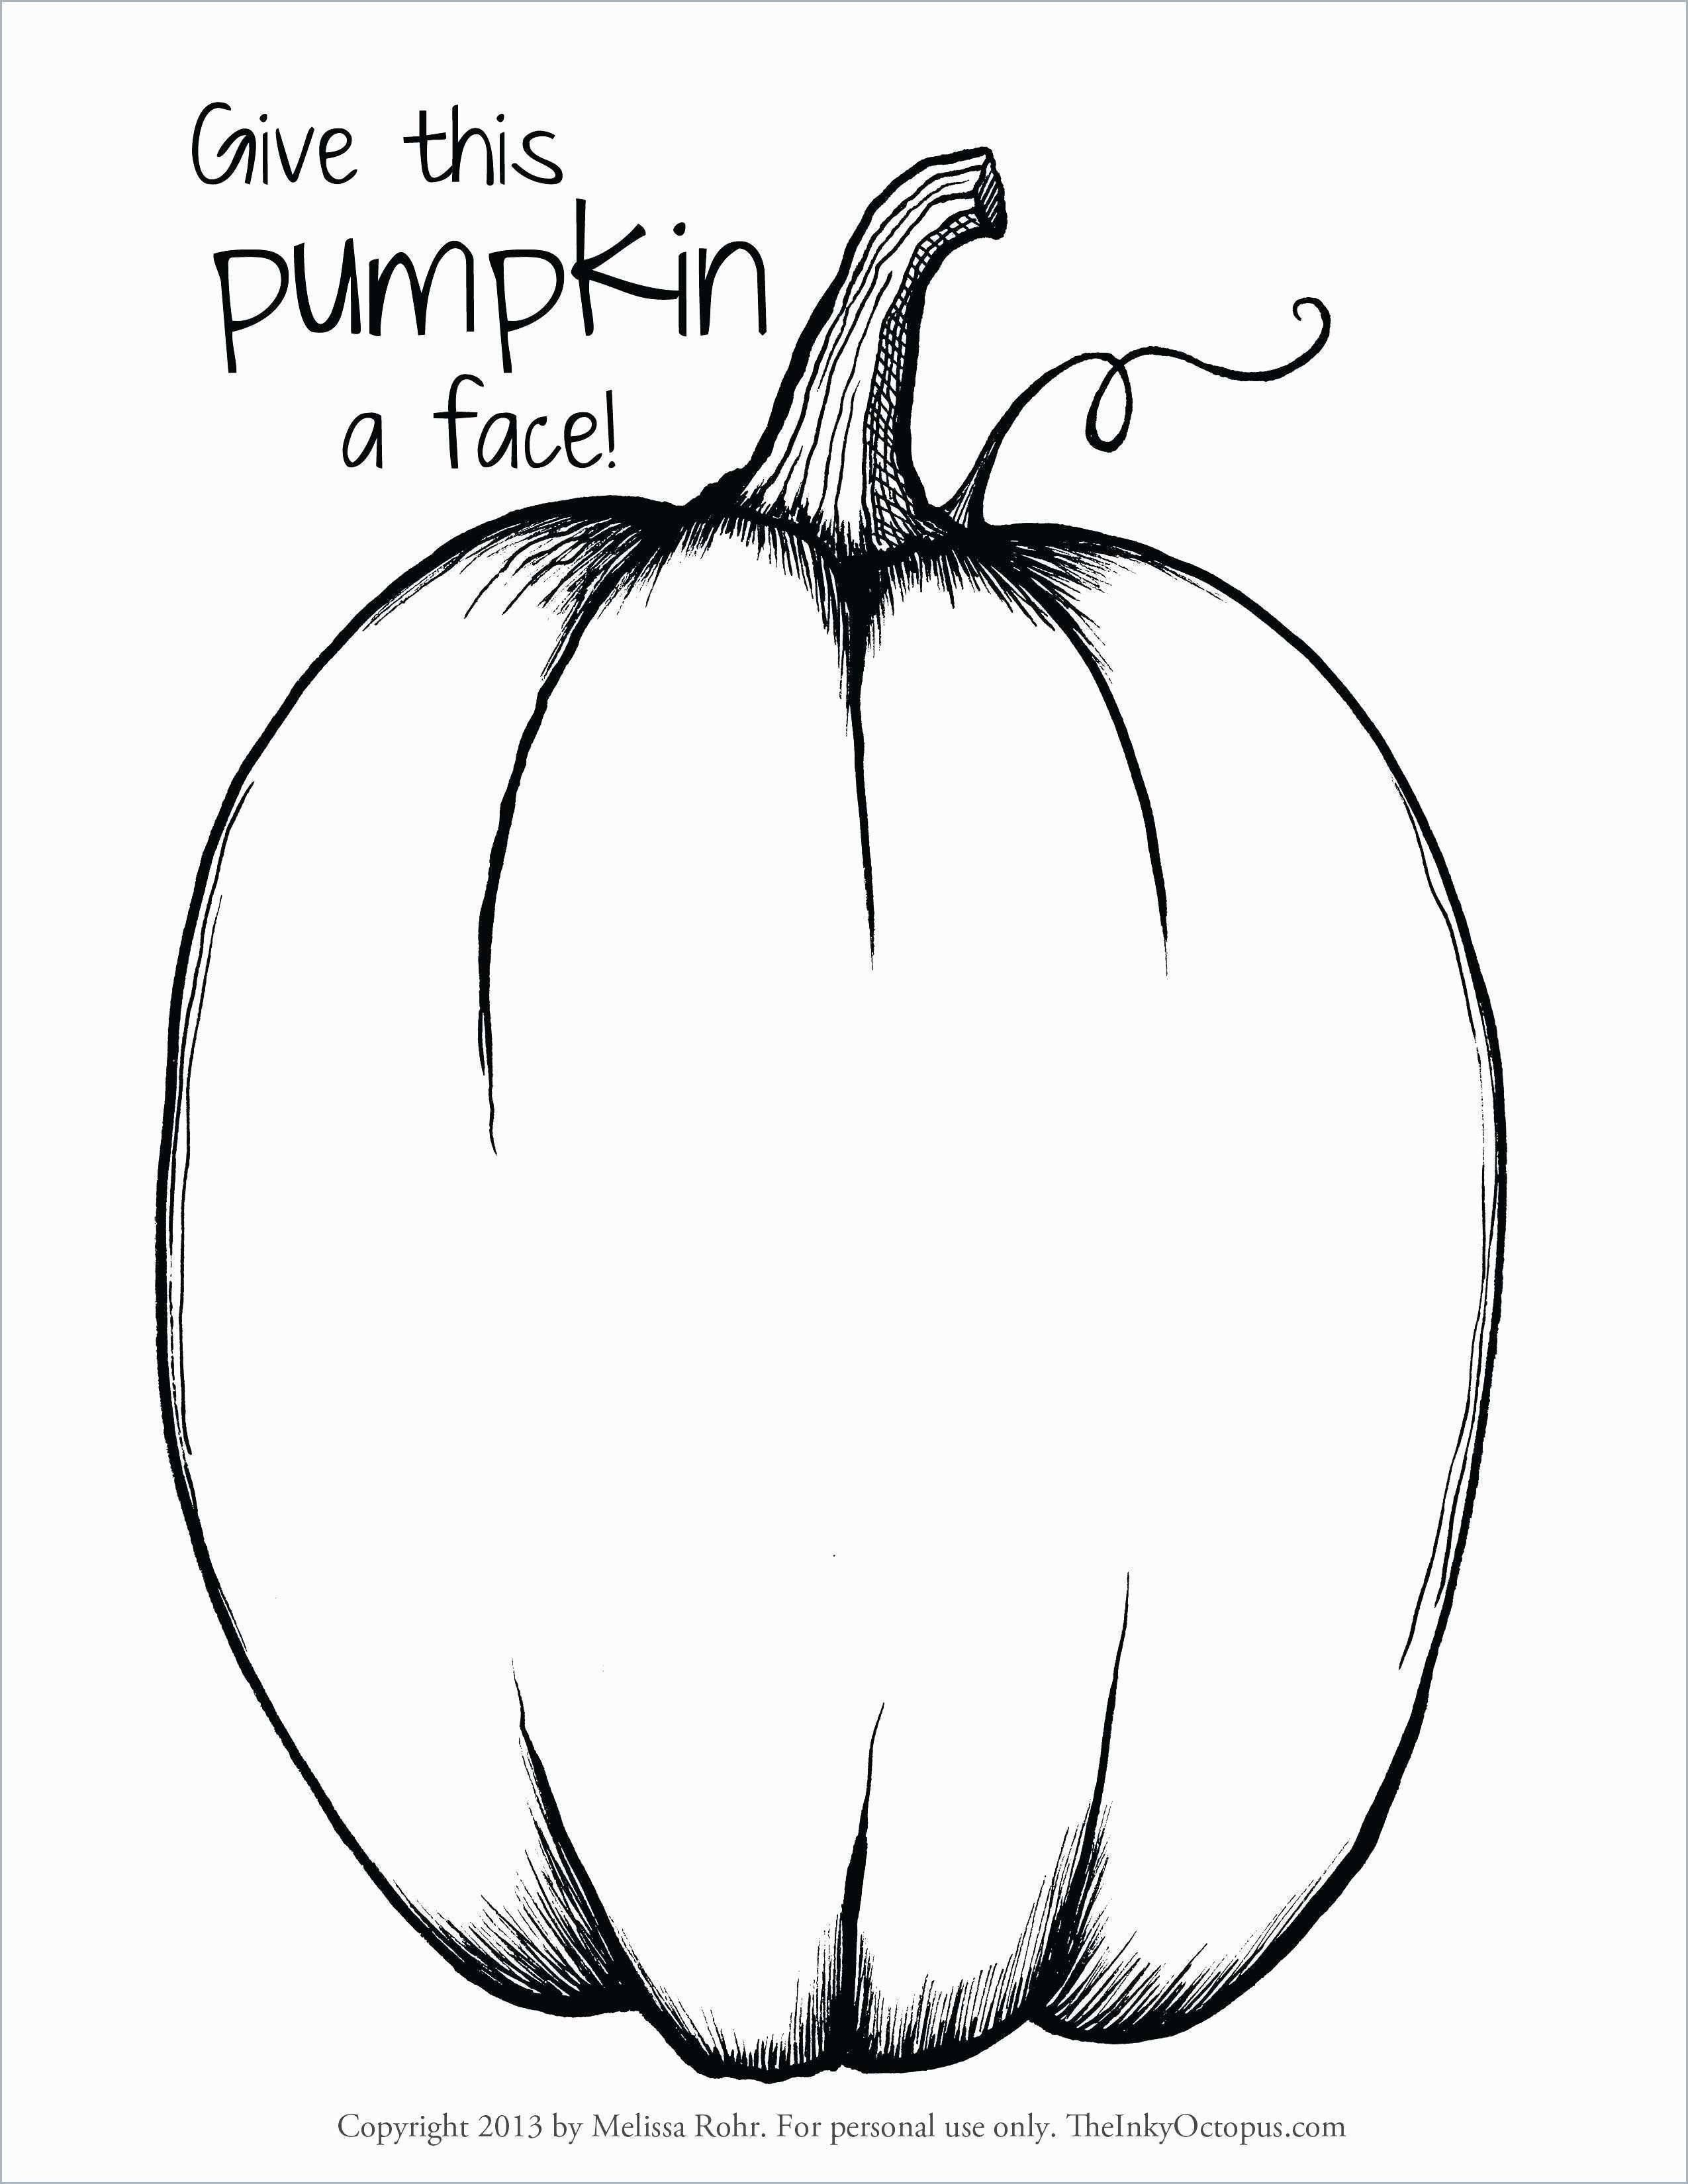 Halloween Pumpkin Coloring Pages Inspirational Candy Coloring Pages Pumpkin Coloring Pages Halloween Coloring Pages Free Halloween Coloring Pages